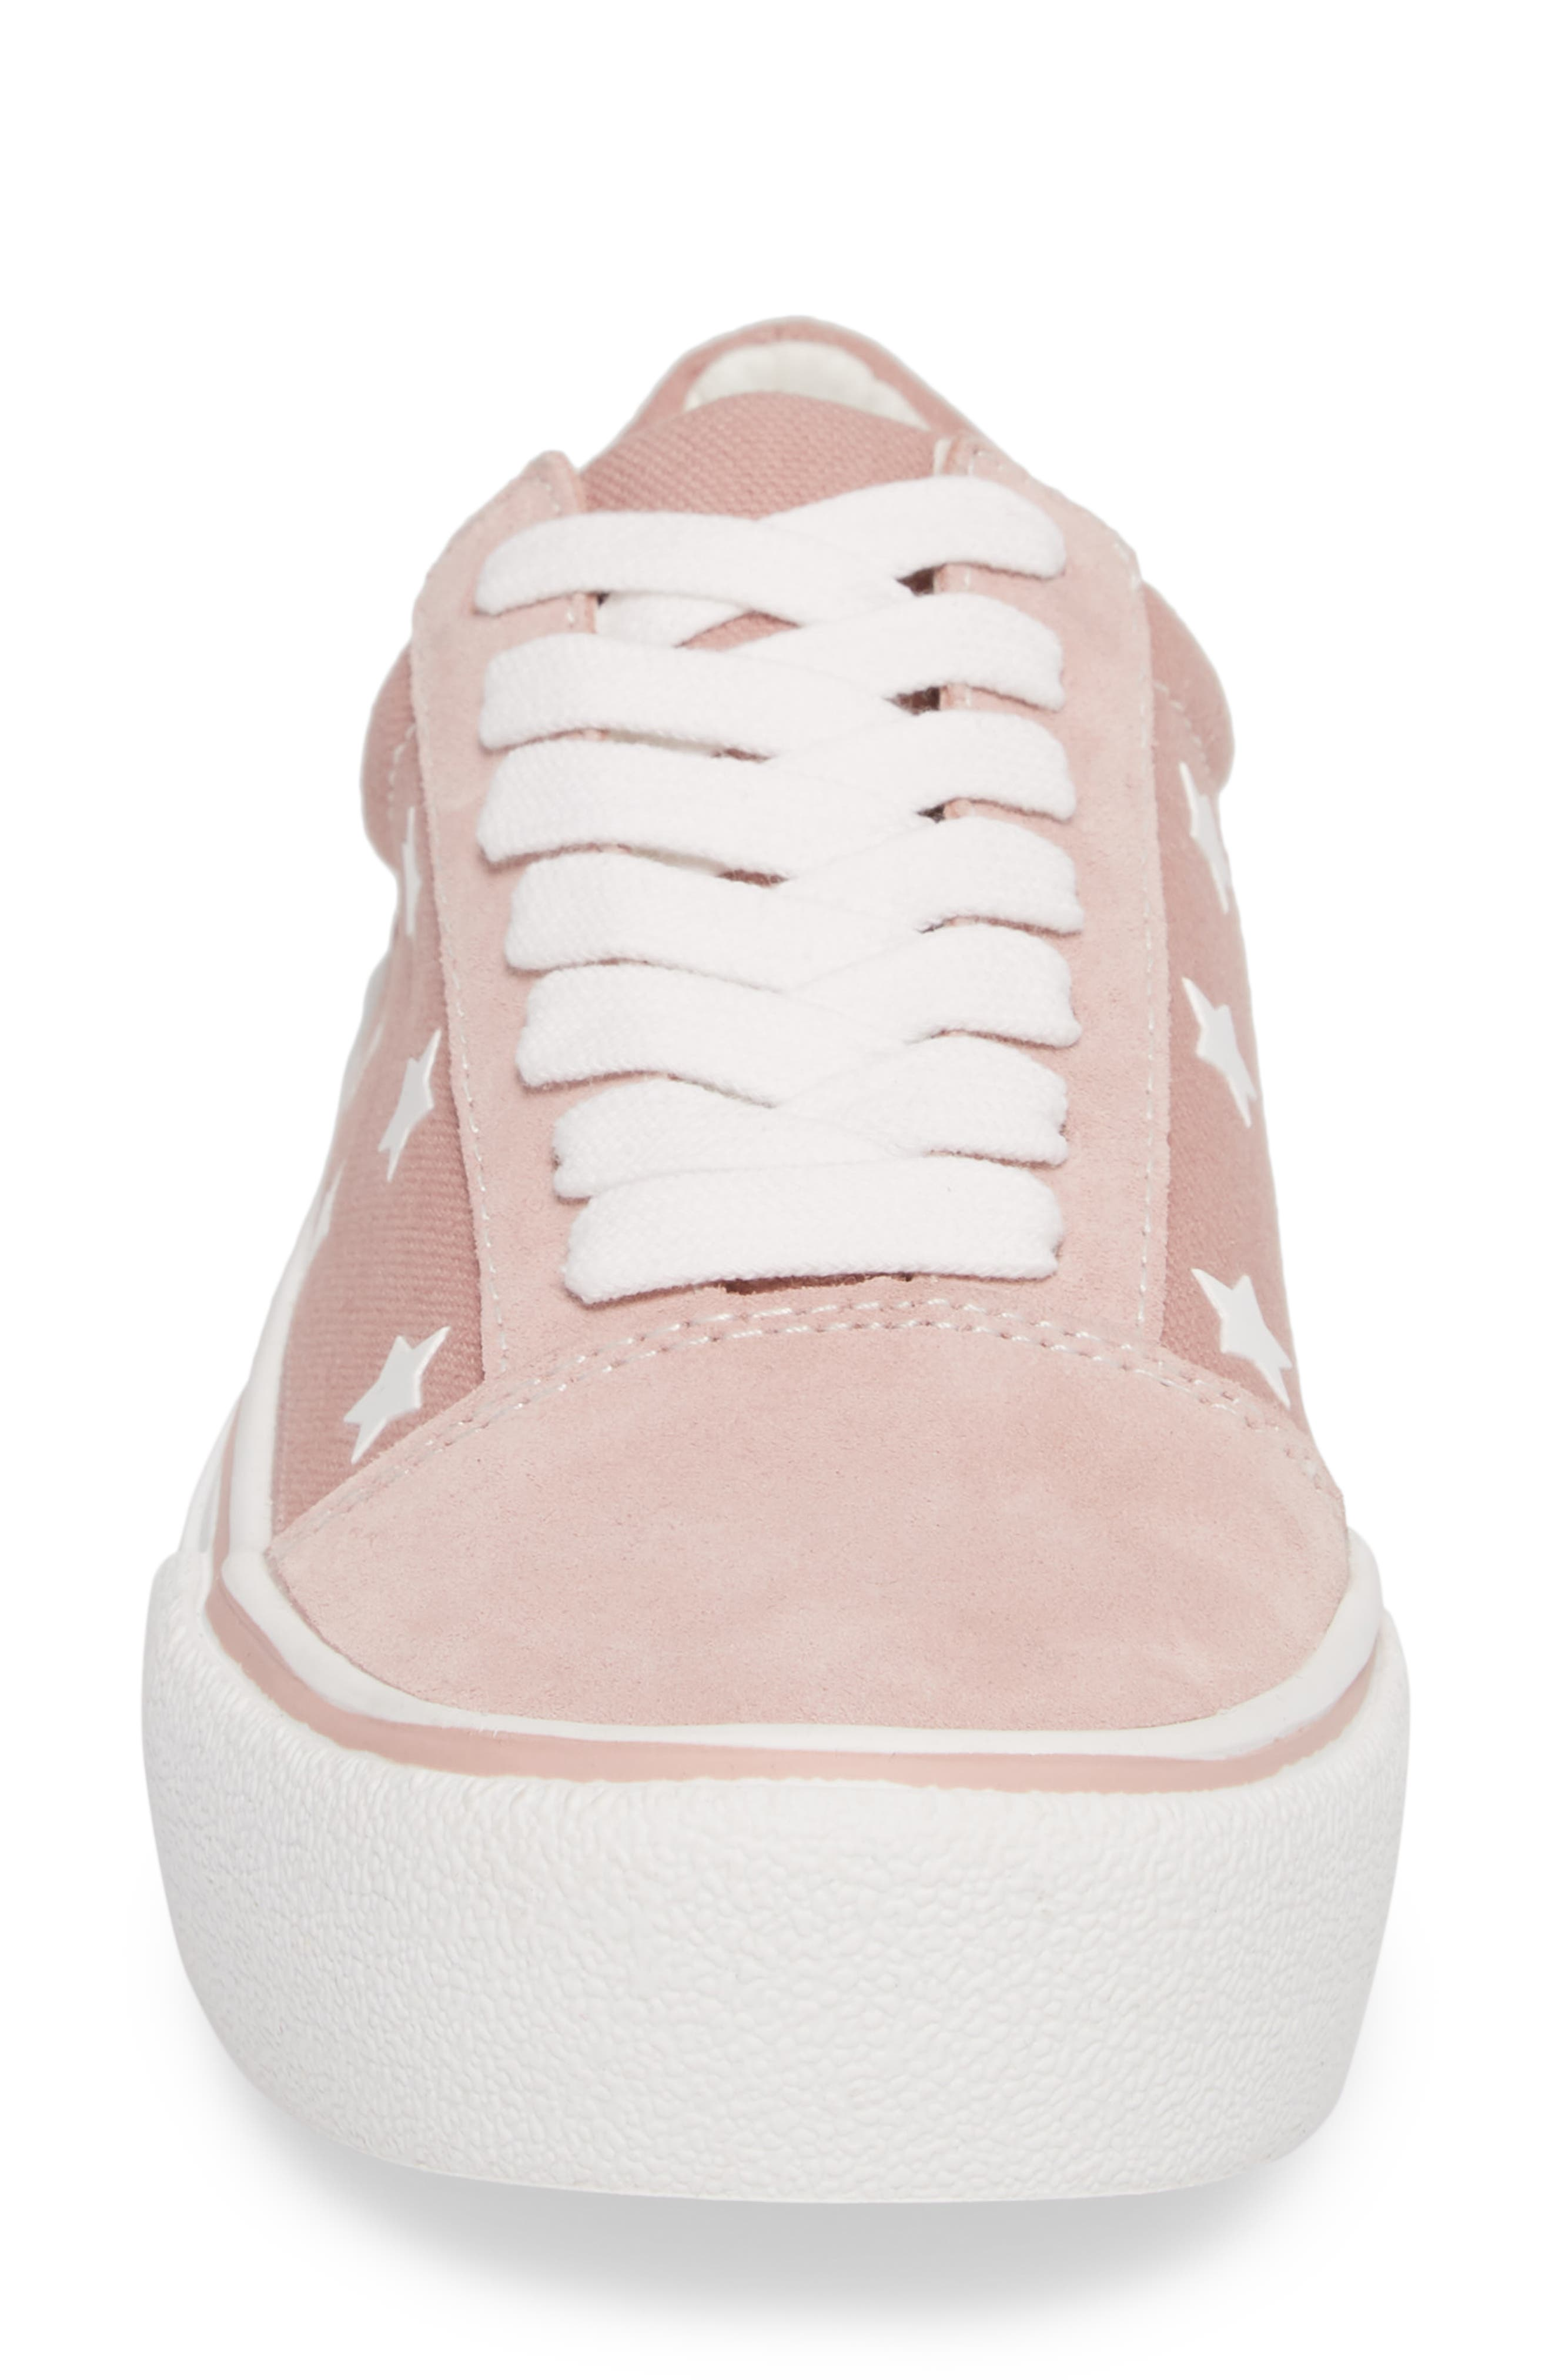 Emile Platform Sneaker,                             Alternate thumbnail 4, color,                             Pink Suede